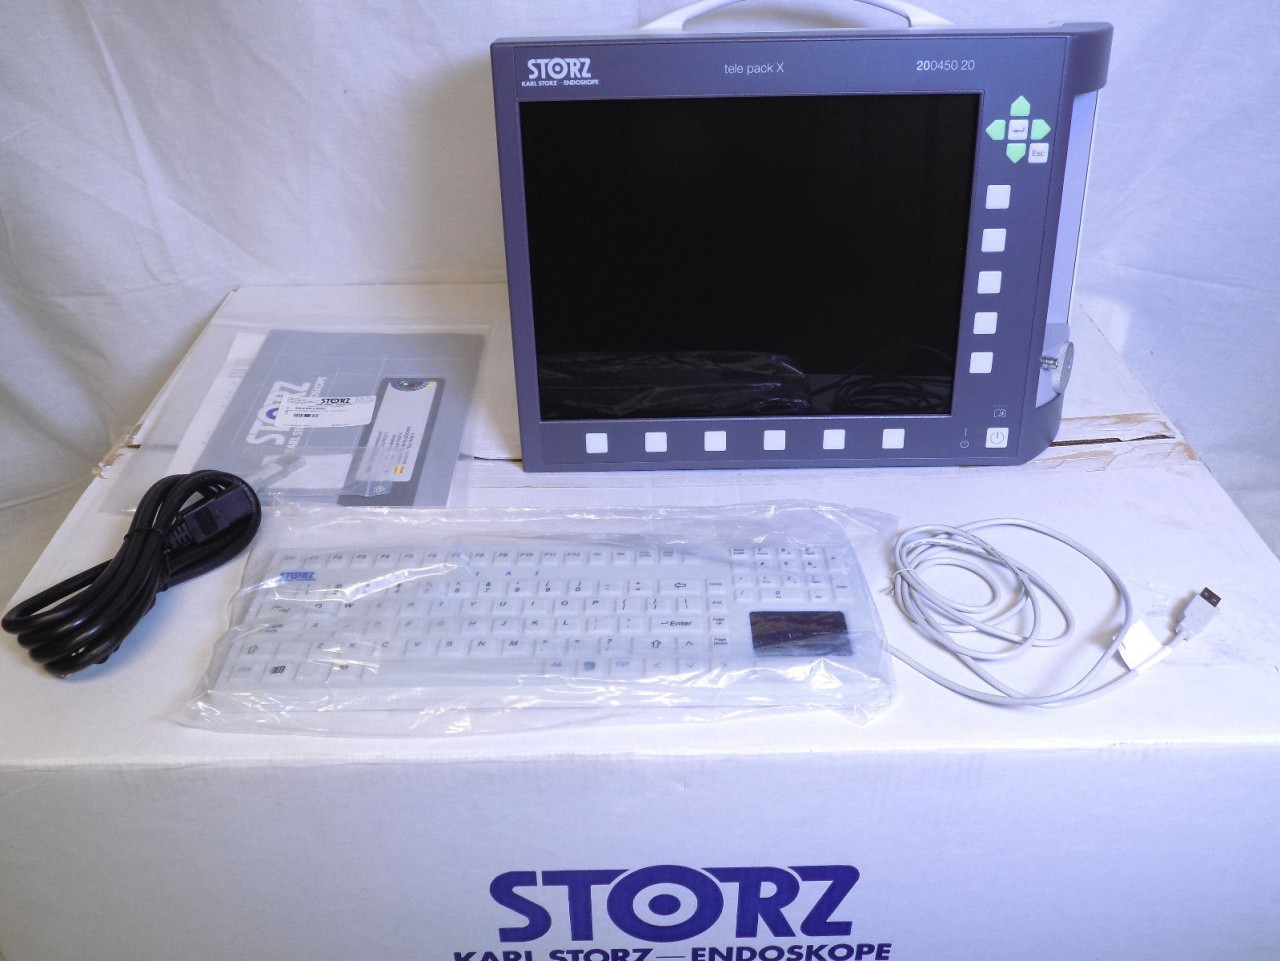 Karl Storz Tele Pack X 200450 20 Video Endoscope System